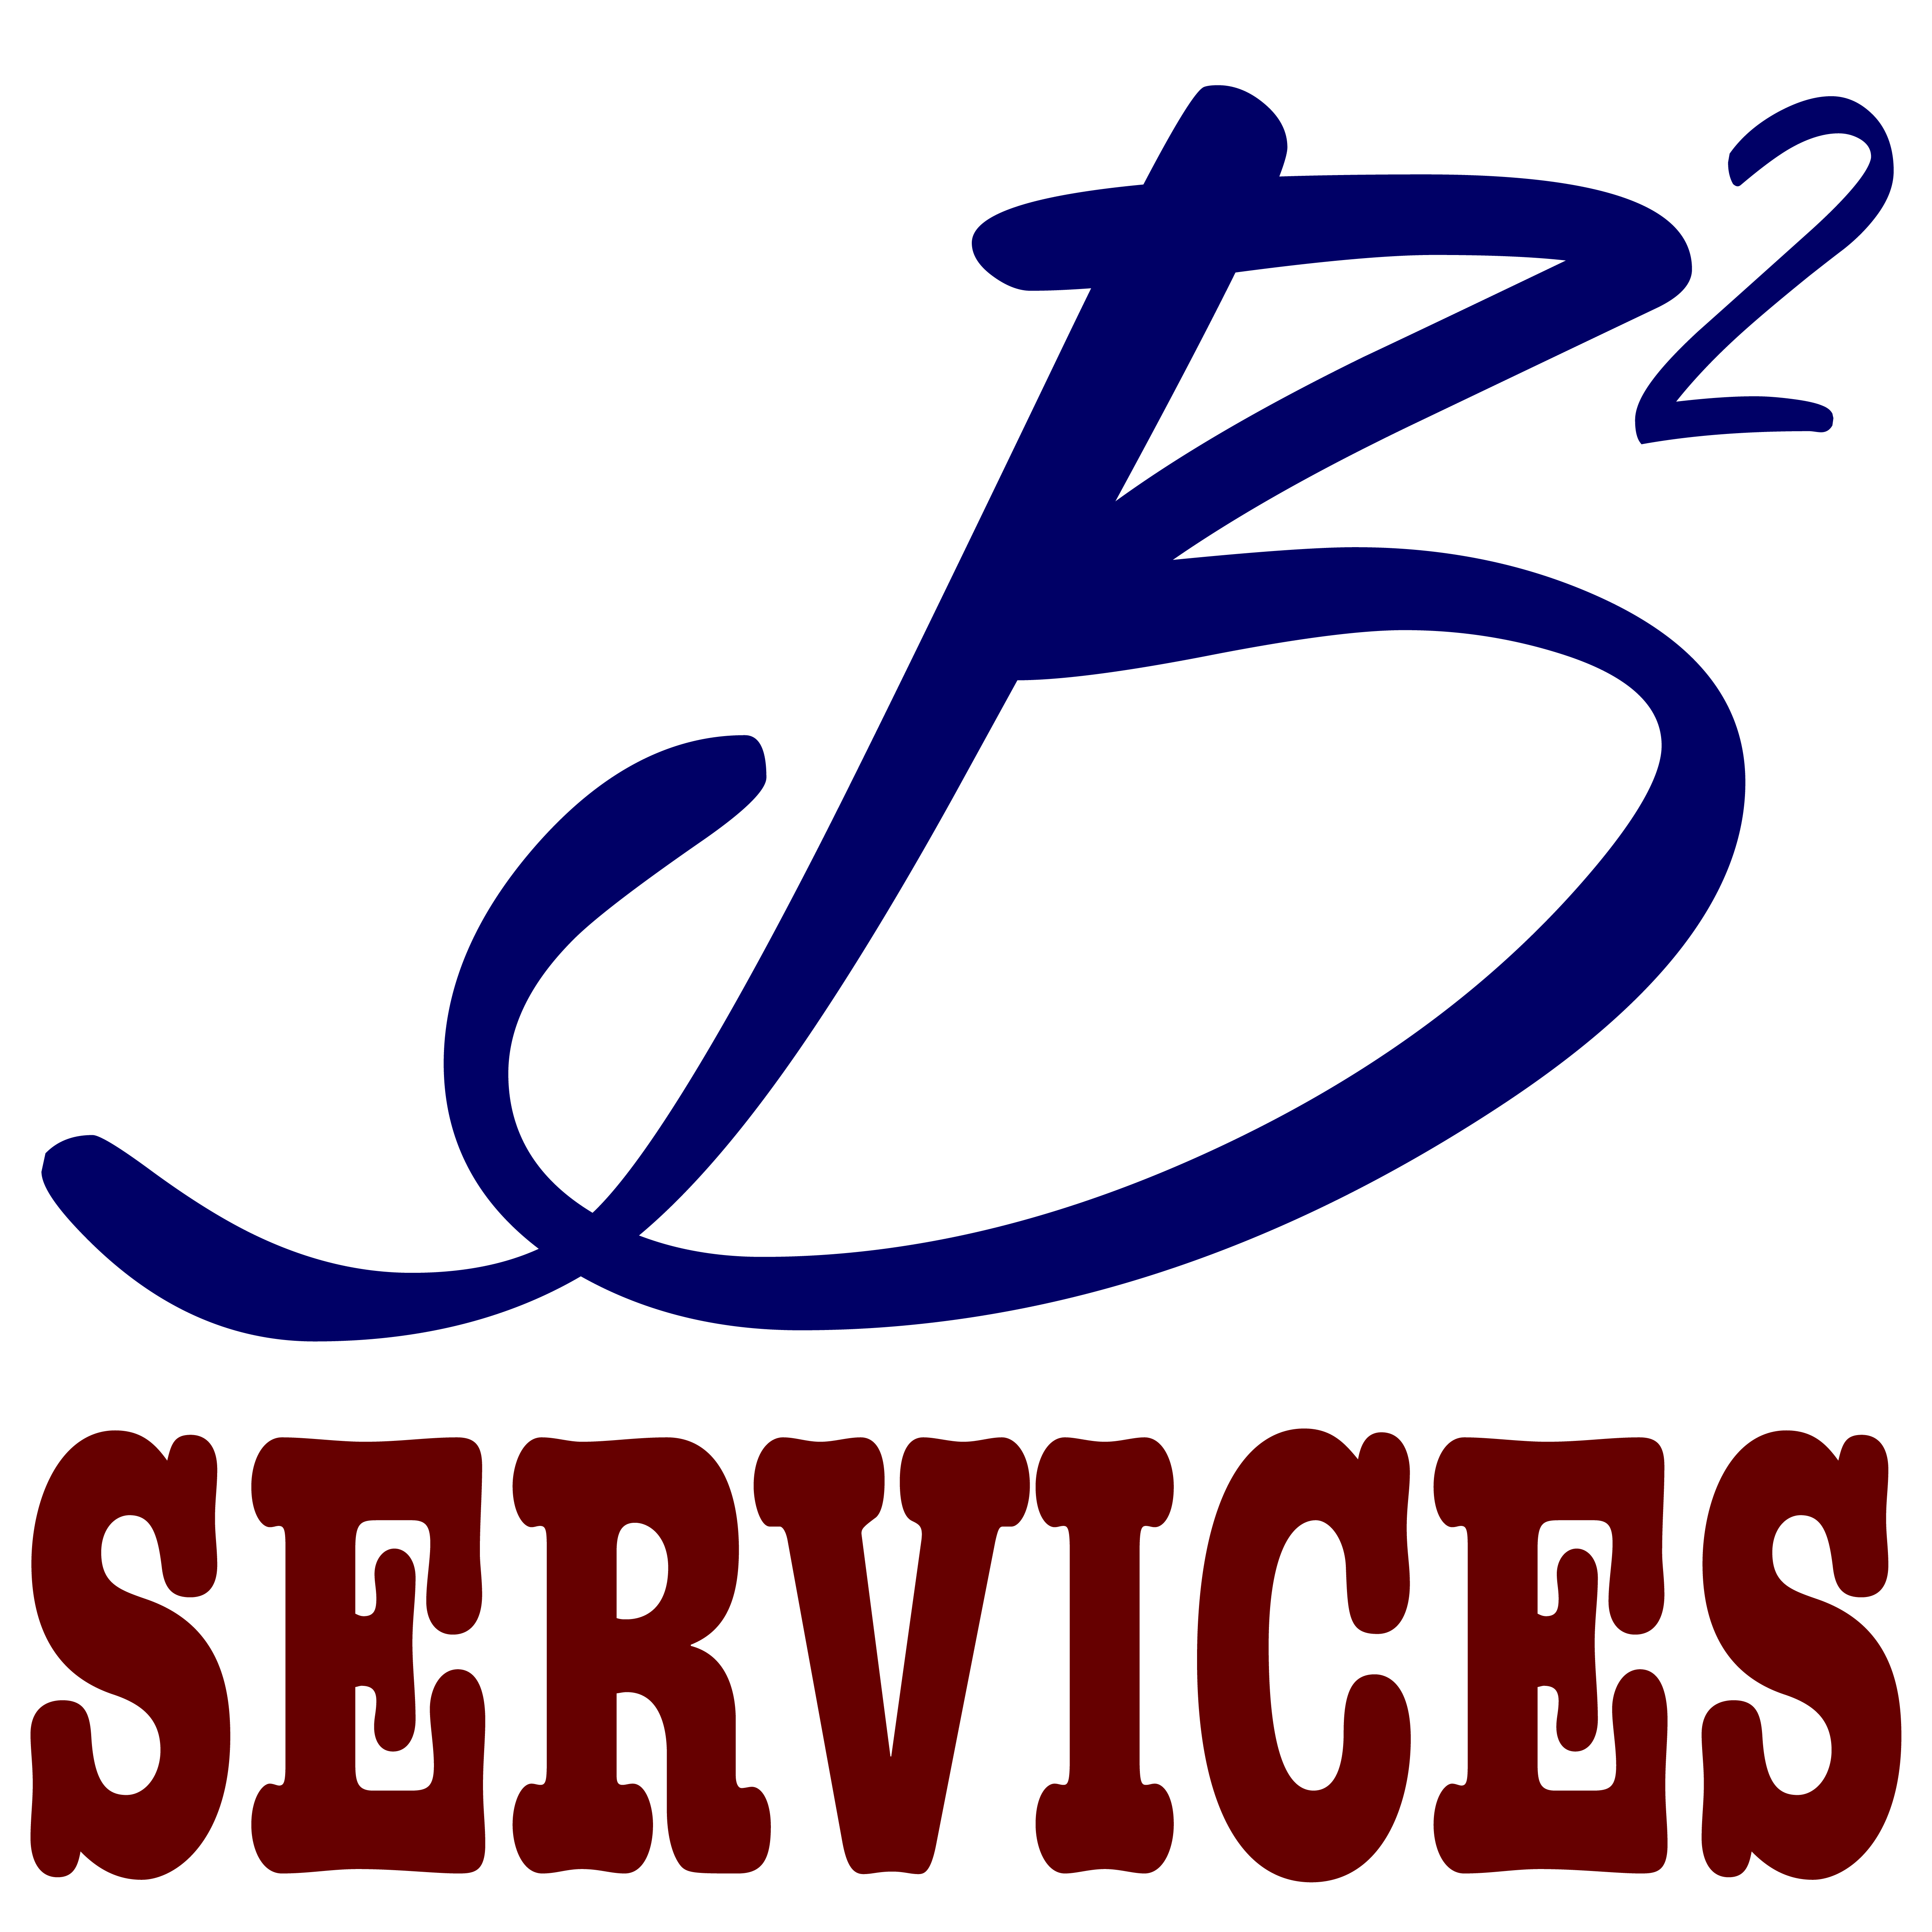 JB2 Services